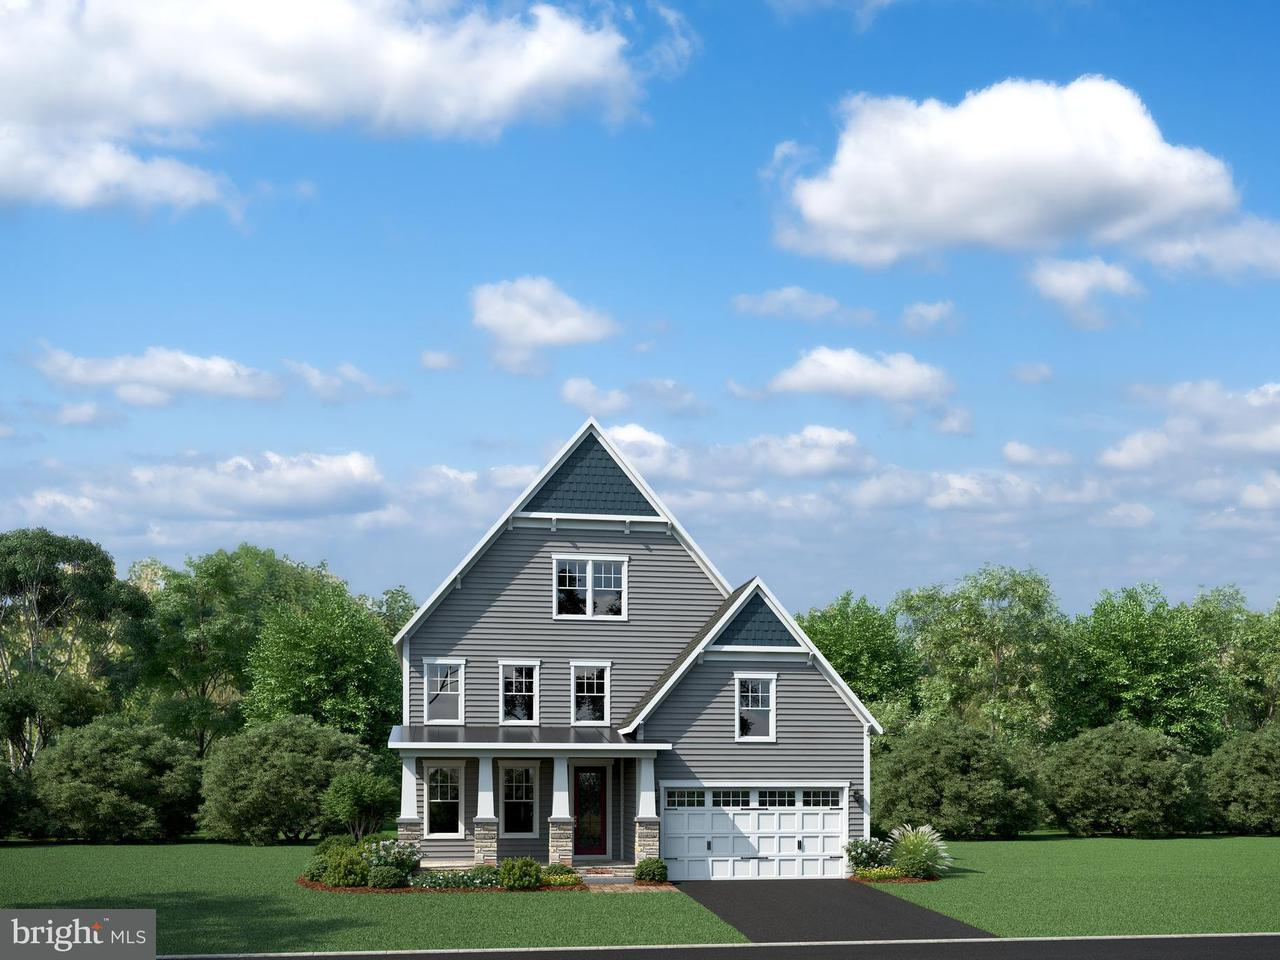 Single Family Home for Sale at 41279 Chatham Green Circle 41279 Chatham Green Circle Aldie, Virginia 20105 United States